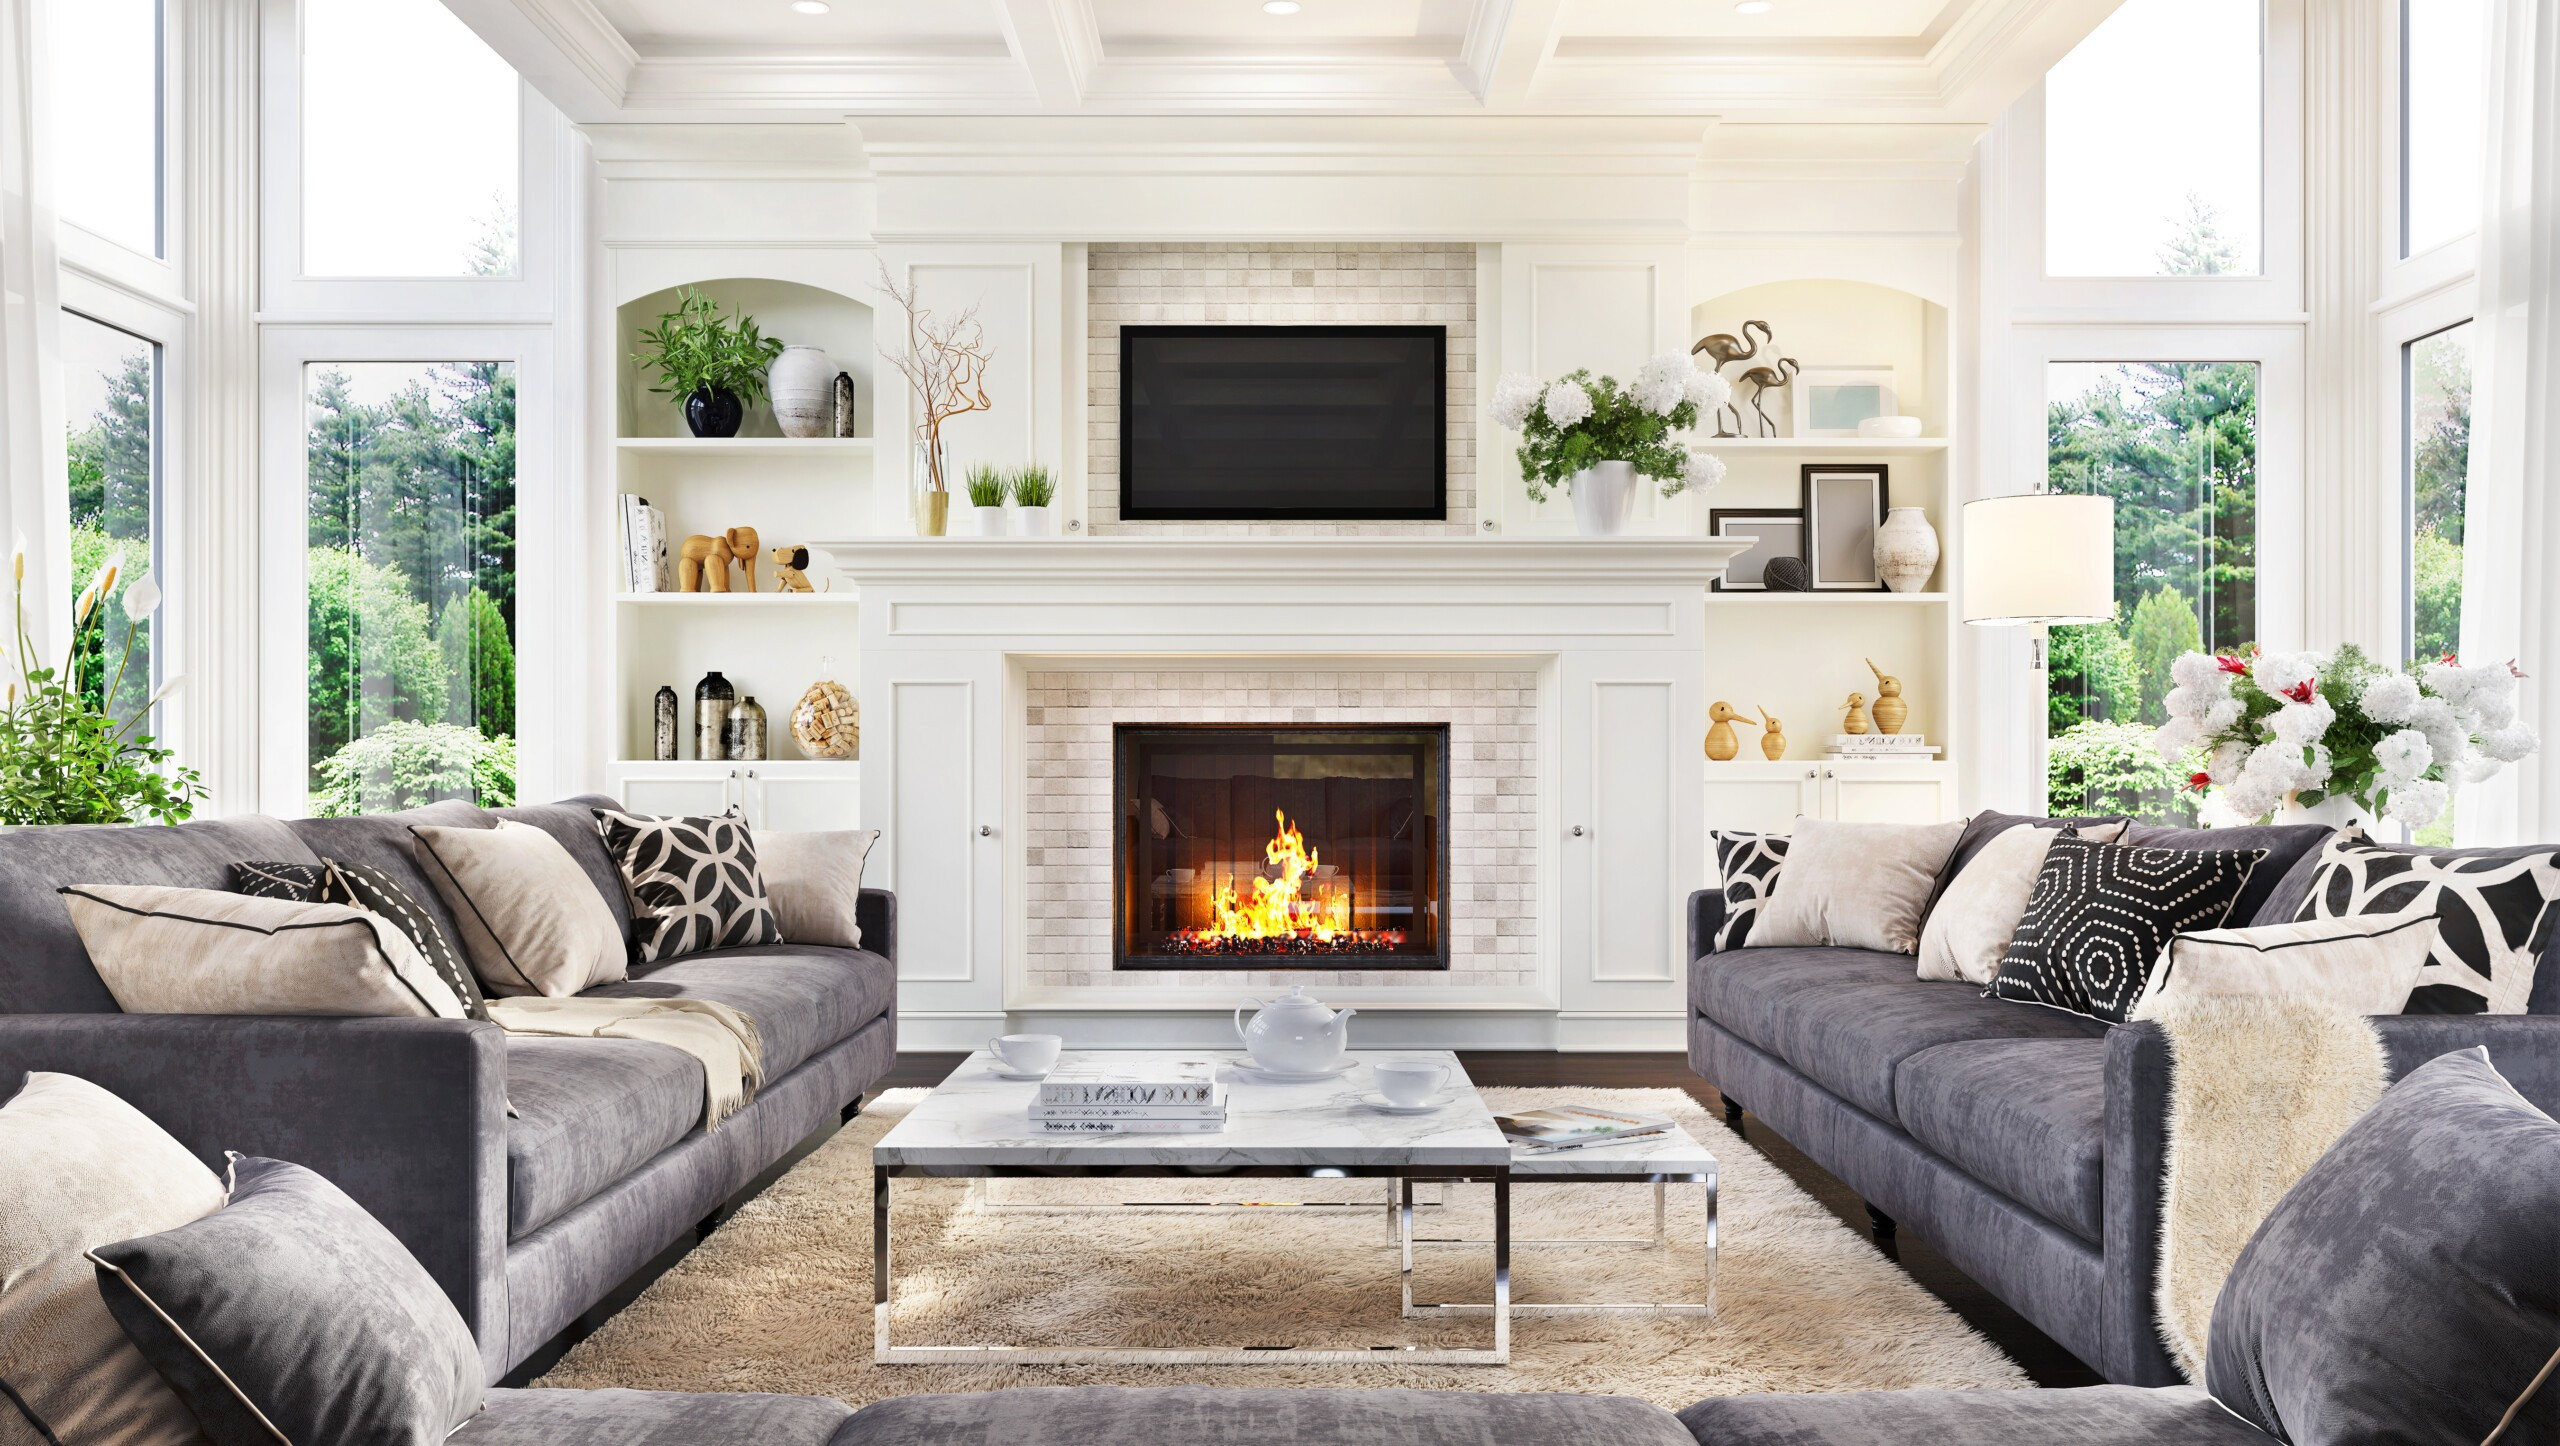 How to choose a decoration style